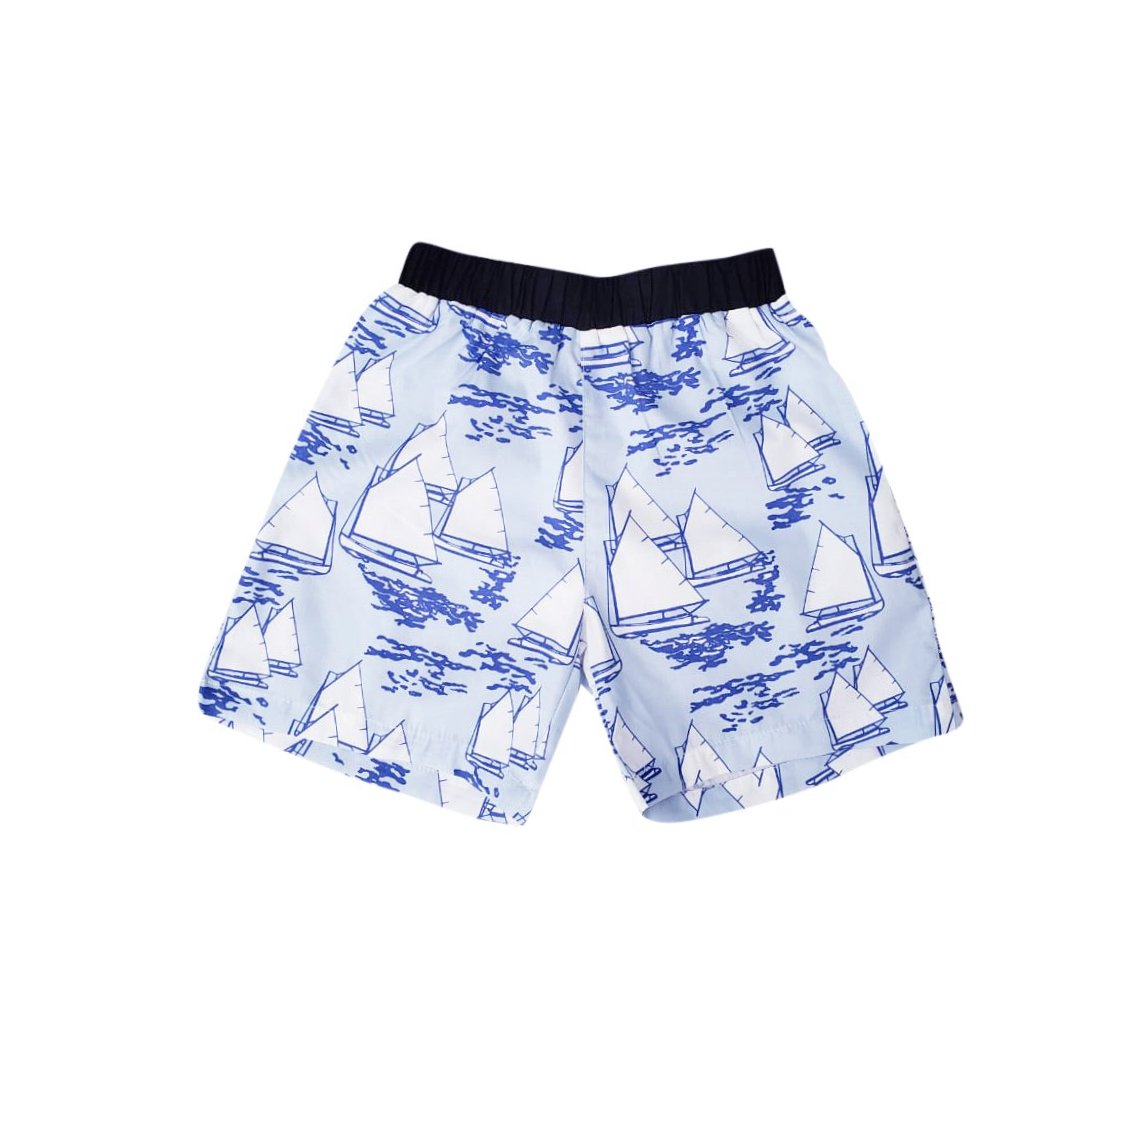 Atlantic Cup Swim Trunks-Blue